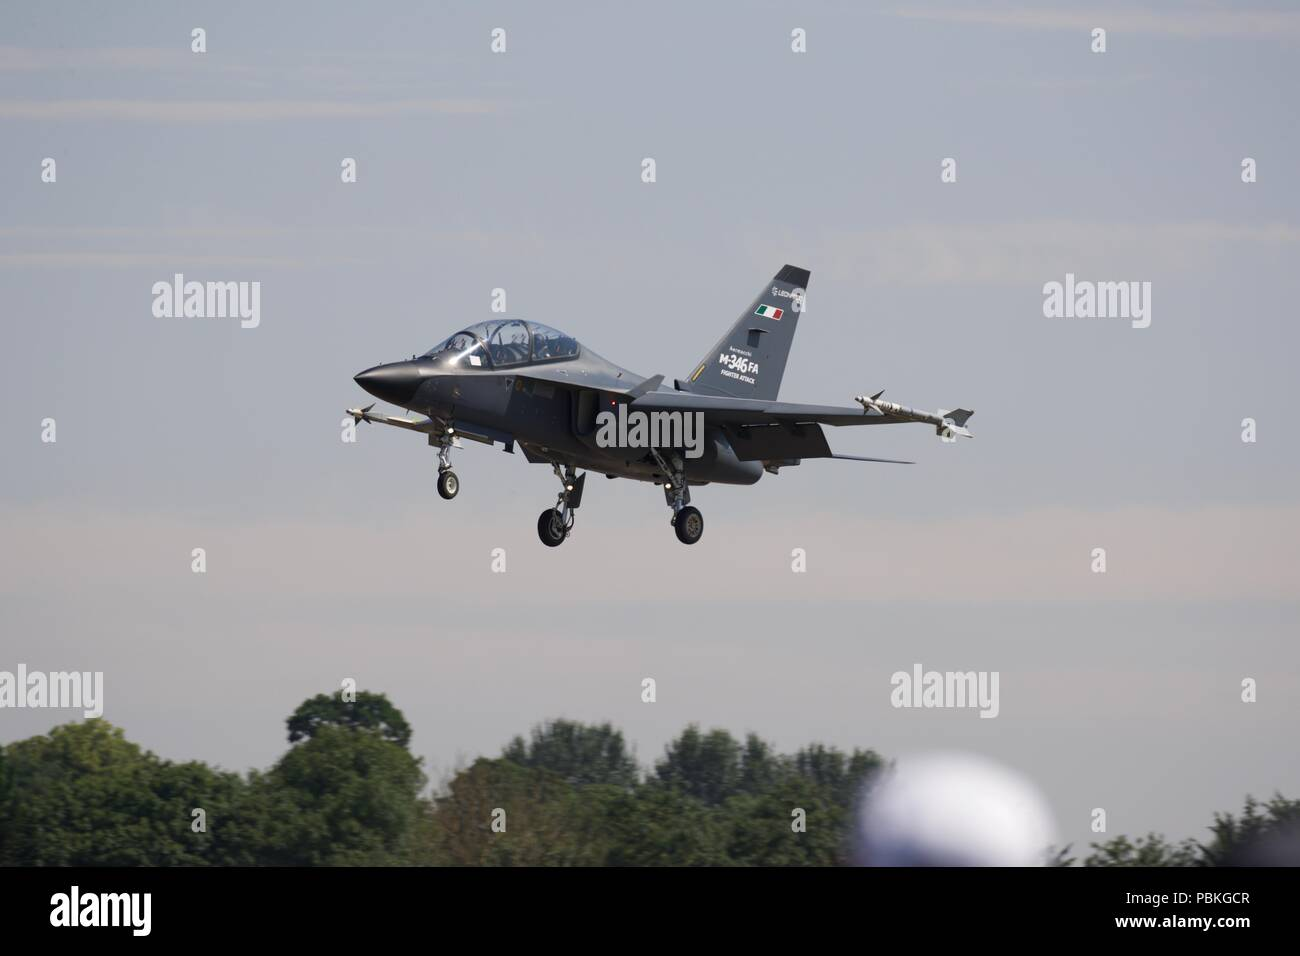 Leonardo Aermacchi M-346FA - Multirole variant capable of air-to-air and air-to-surface combat with advanced radar and stealth features - Stock Image